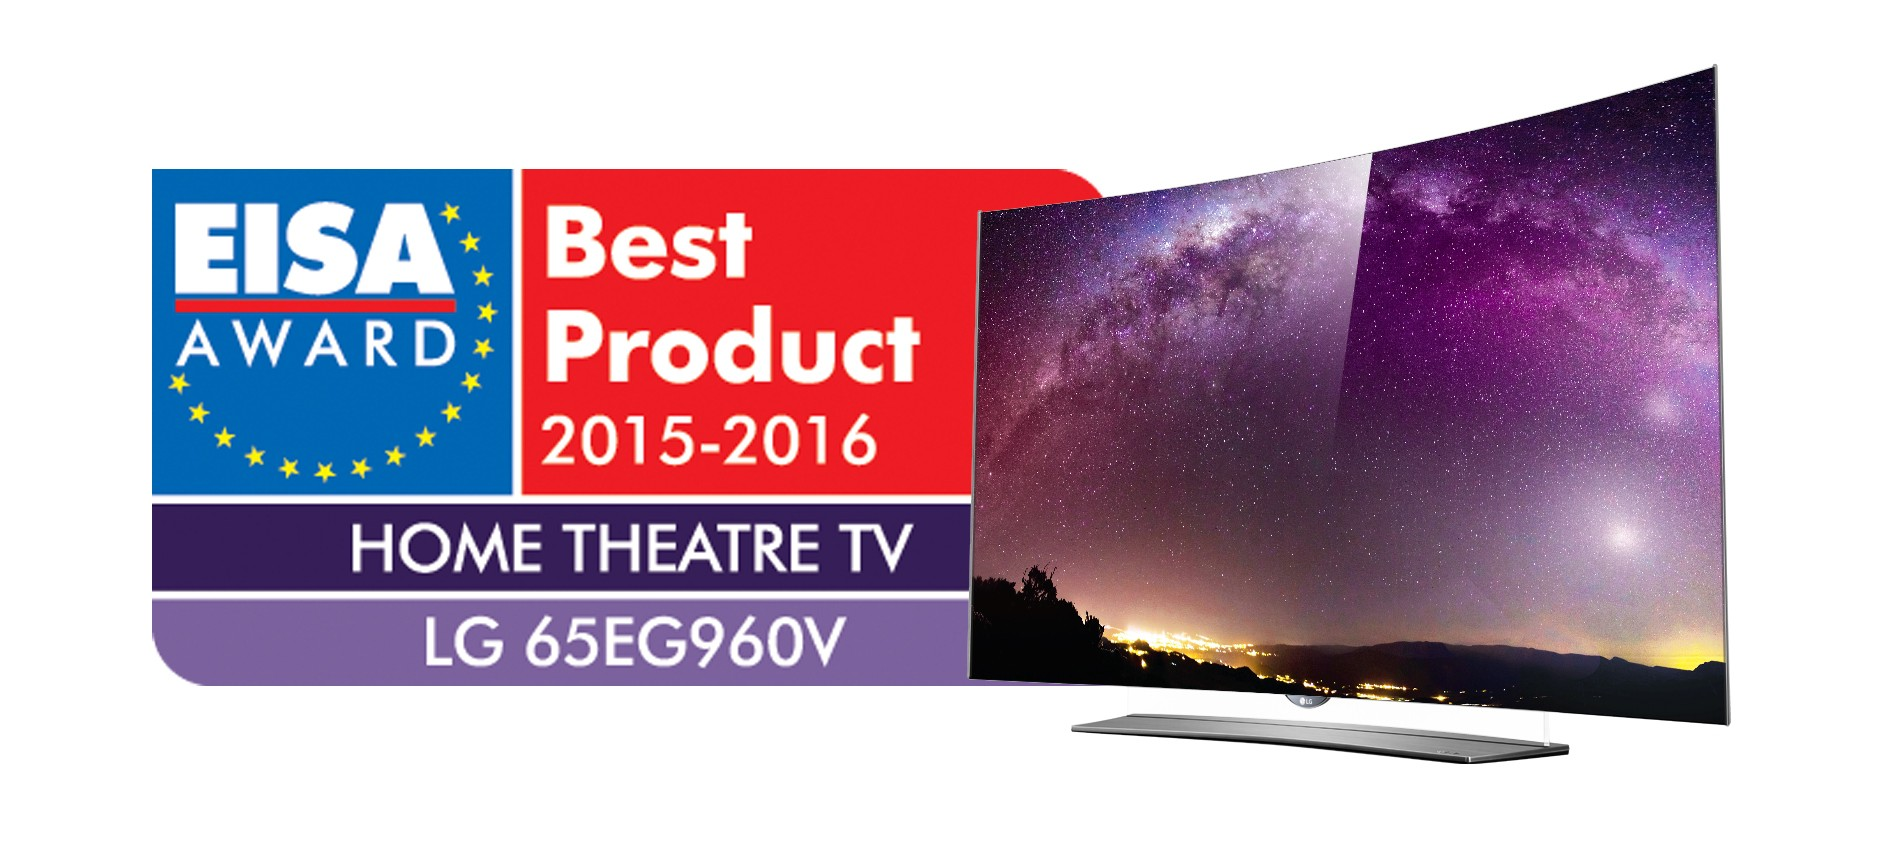 LG's 4K OLED TV (model 65EG960V) won the European Home Theatre TV category at the European Imaging and Sound Association (EISA) Awards.